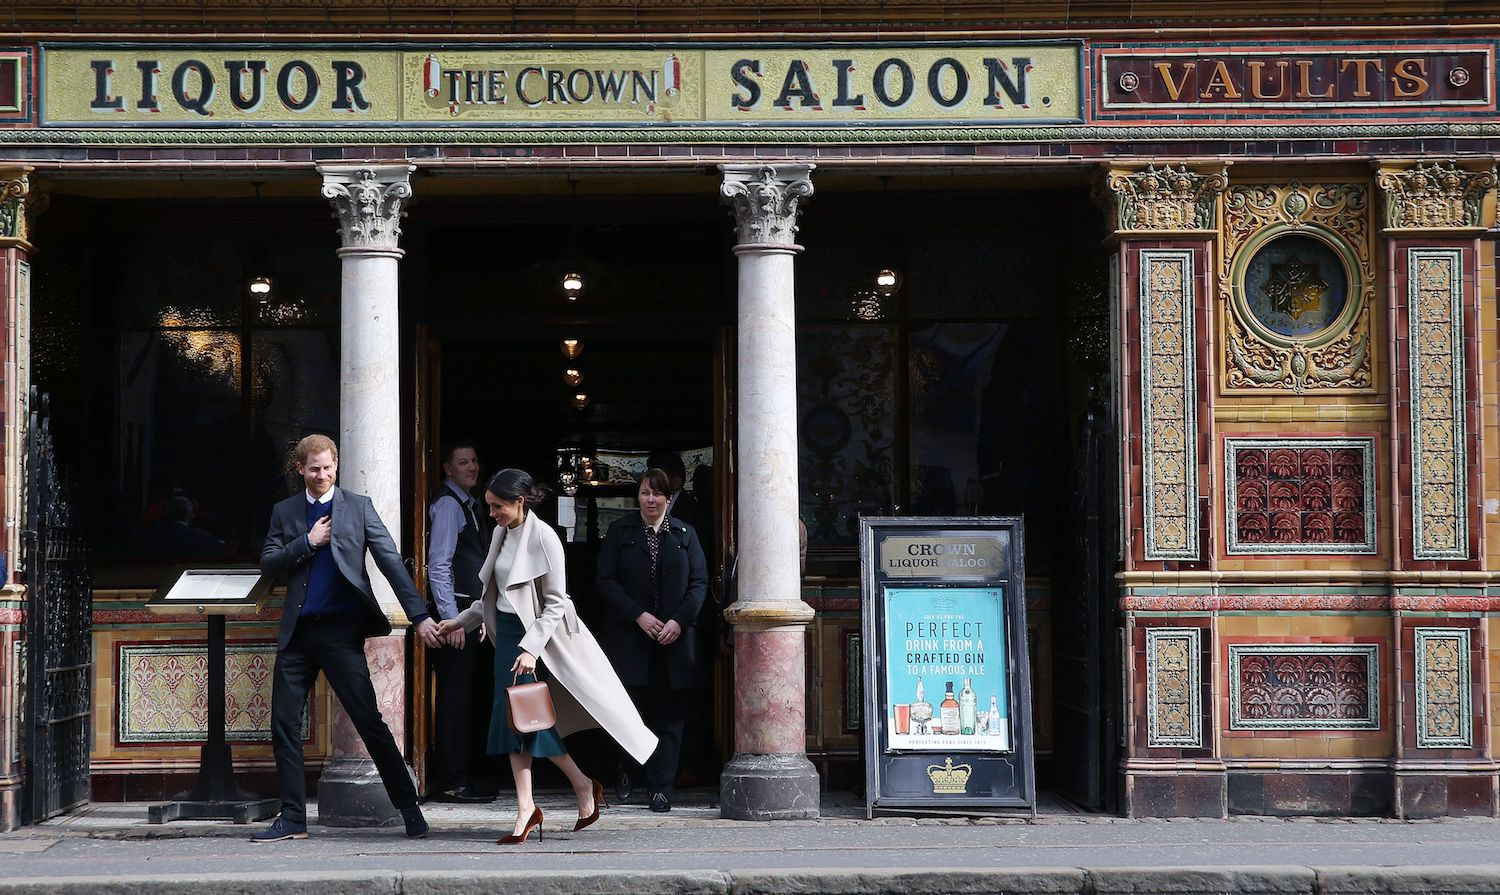 Britain's Prince Harry (L) and Prince Harry's fiancee, US actress Meghan Markle leave after a visit to one of Belfast's most historic buildings, The Crown Liquor Saloon, a former Victorian gin palace, now run by the National Trust, on March 23, 2018, during the Royal Couple's first joint visit to Northern Ireland. / AFP PHOTO / POOL / Kelvin BOYES        (Photo credit should read KELVIN BOYES/AFP/Getty Images)